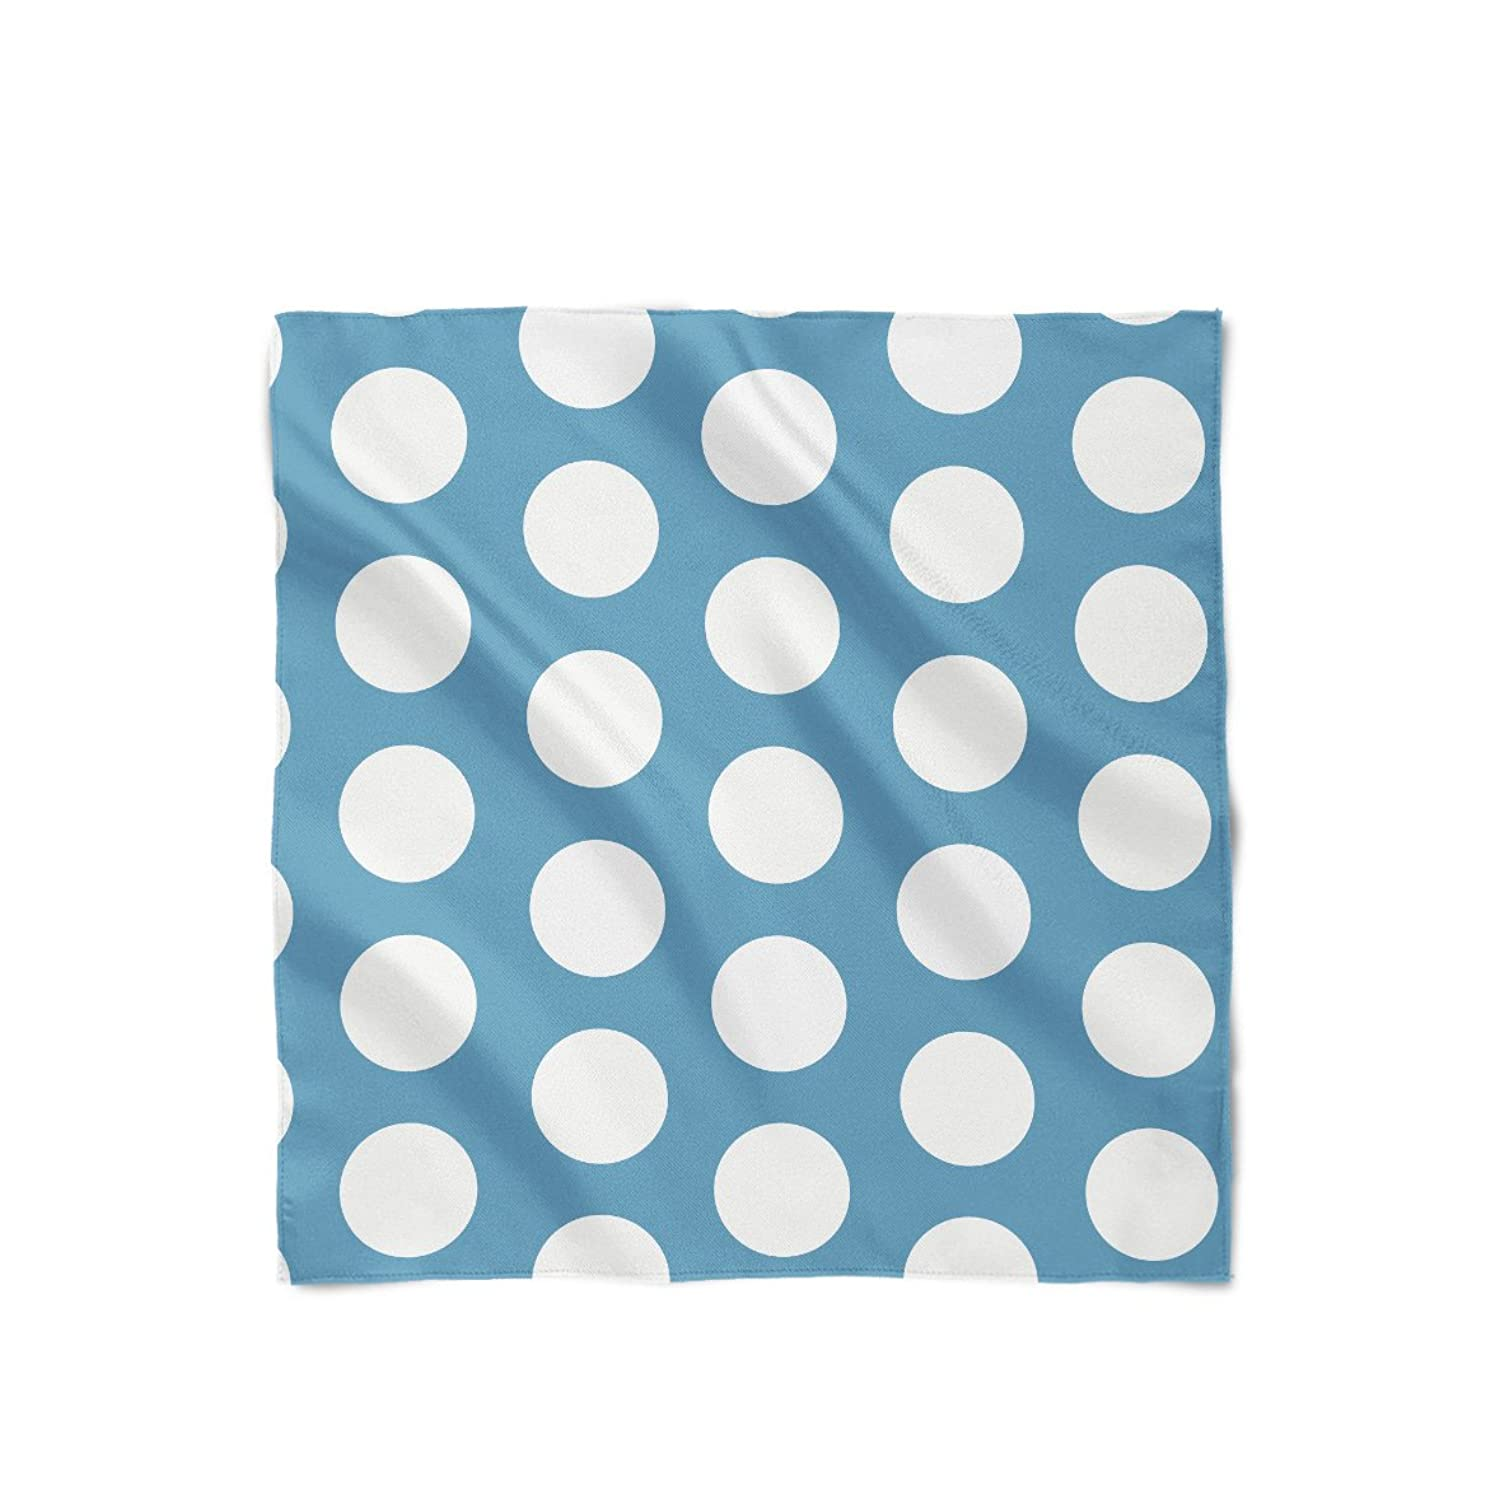 Large Polka Dots on Blue Satin Style Scarf